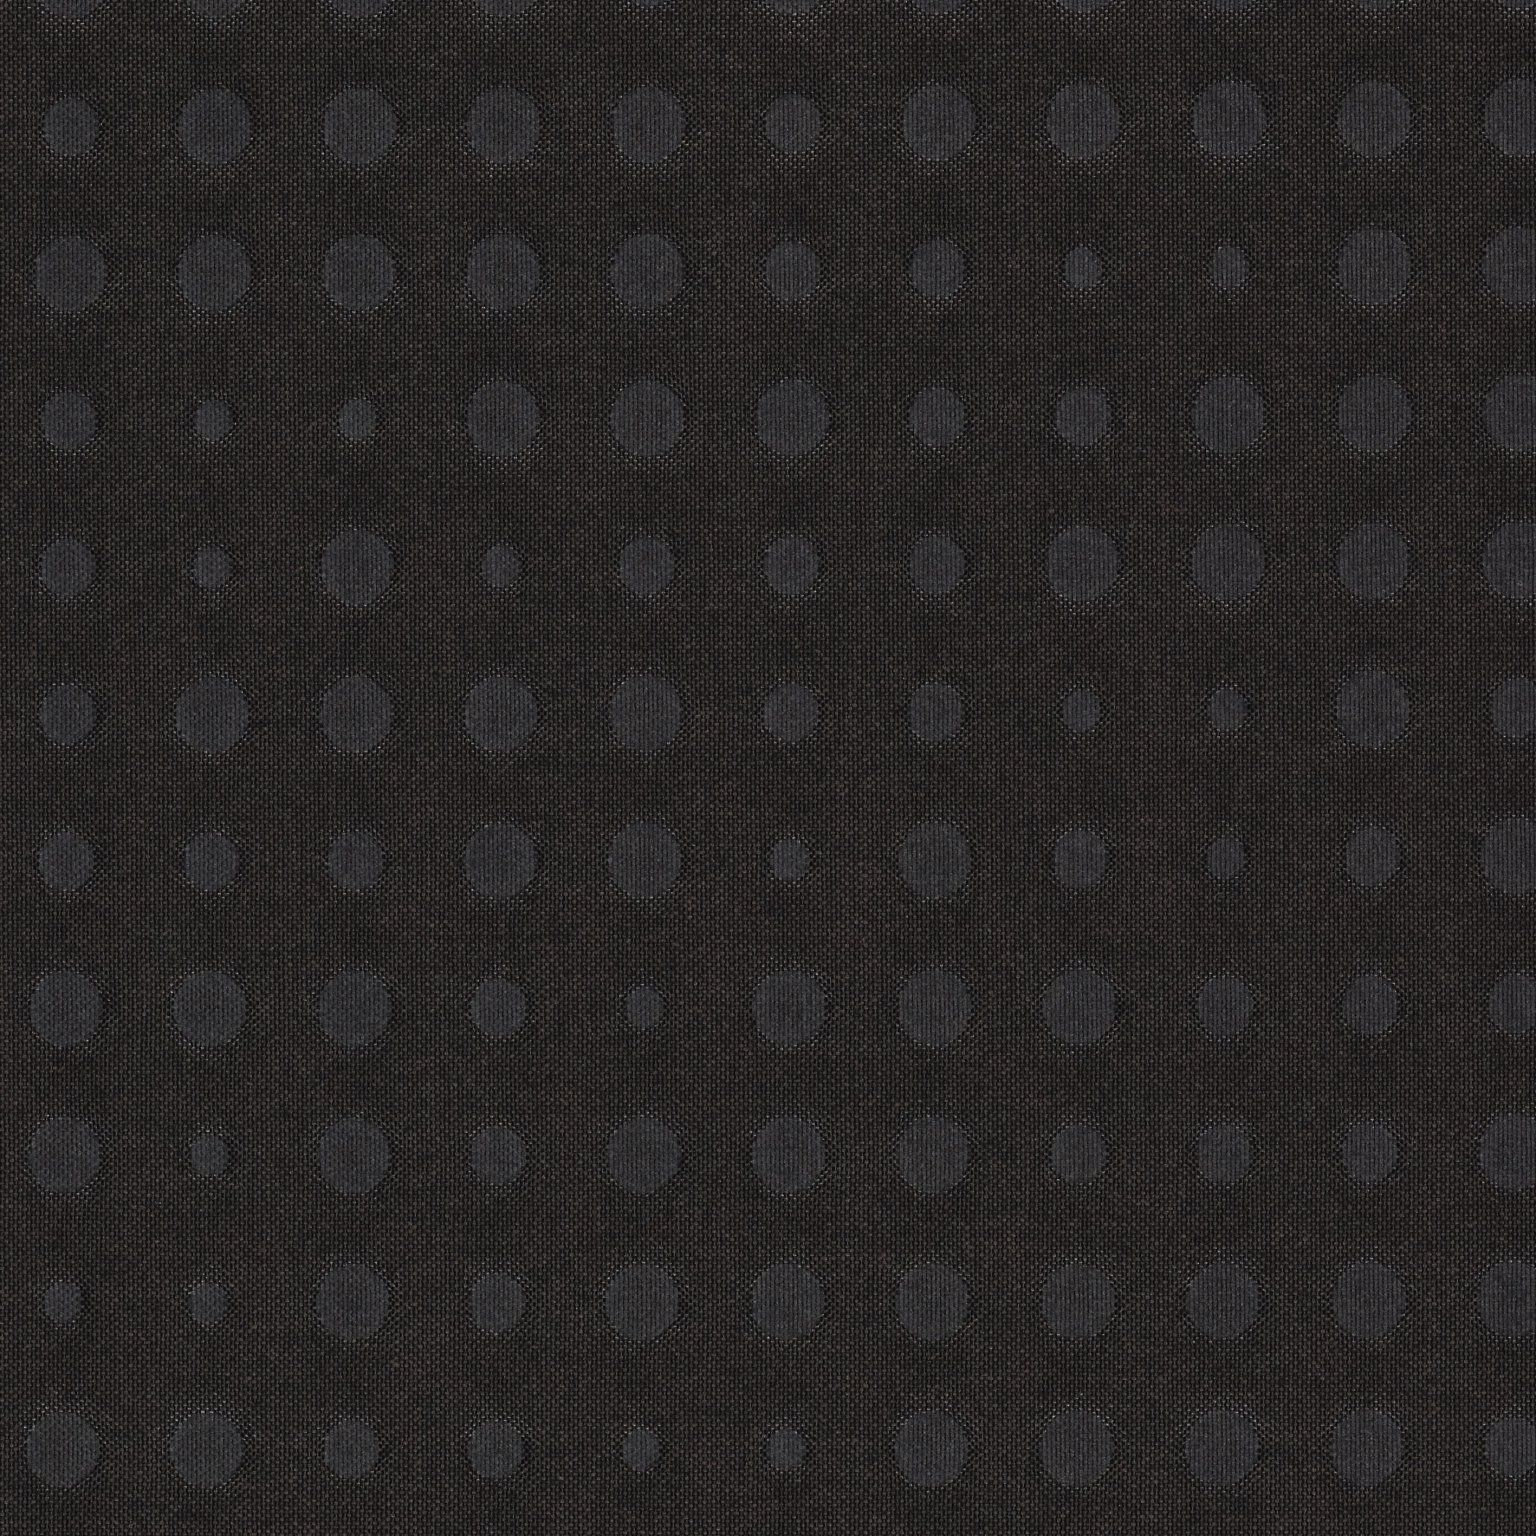 Kvadrat Upholstery Fabric Highfield Dark Brown Quilted Dots 17.25 yds 371 GC